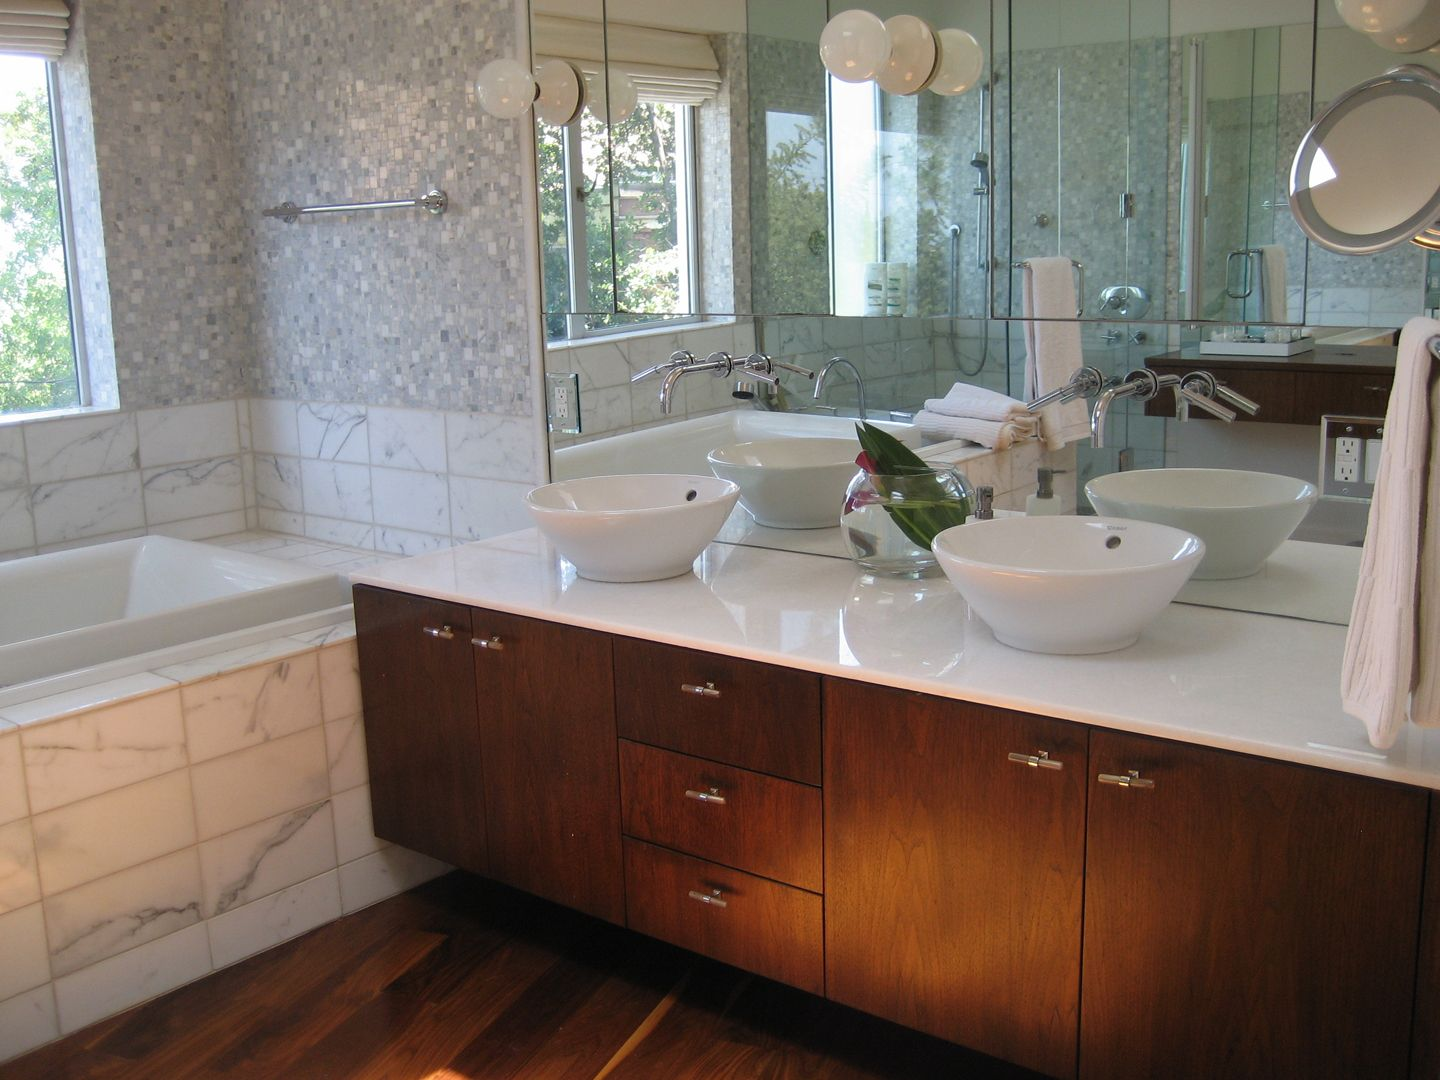 28 Awesome carrara marble countertops bathroom images Ideas for